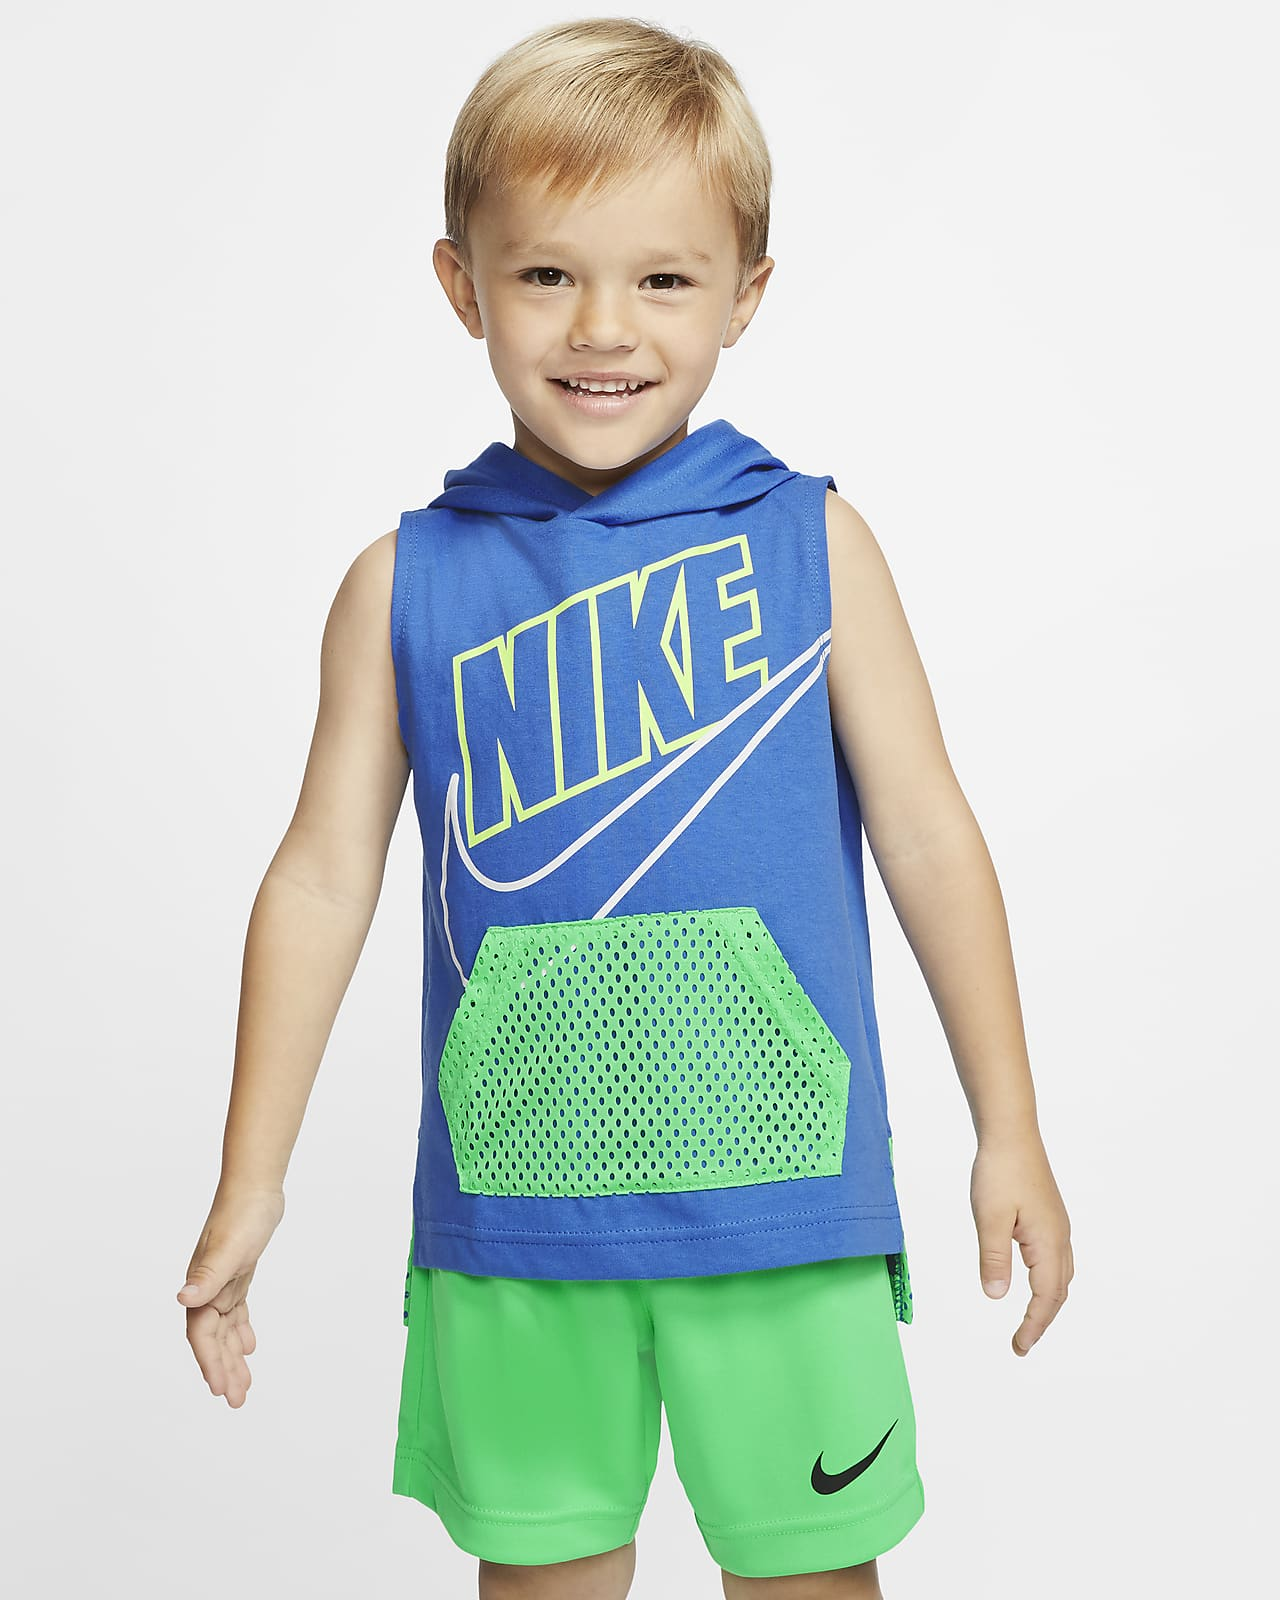 Nike Toddler Hooded Top